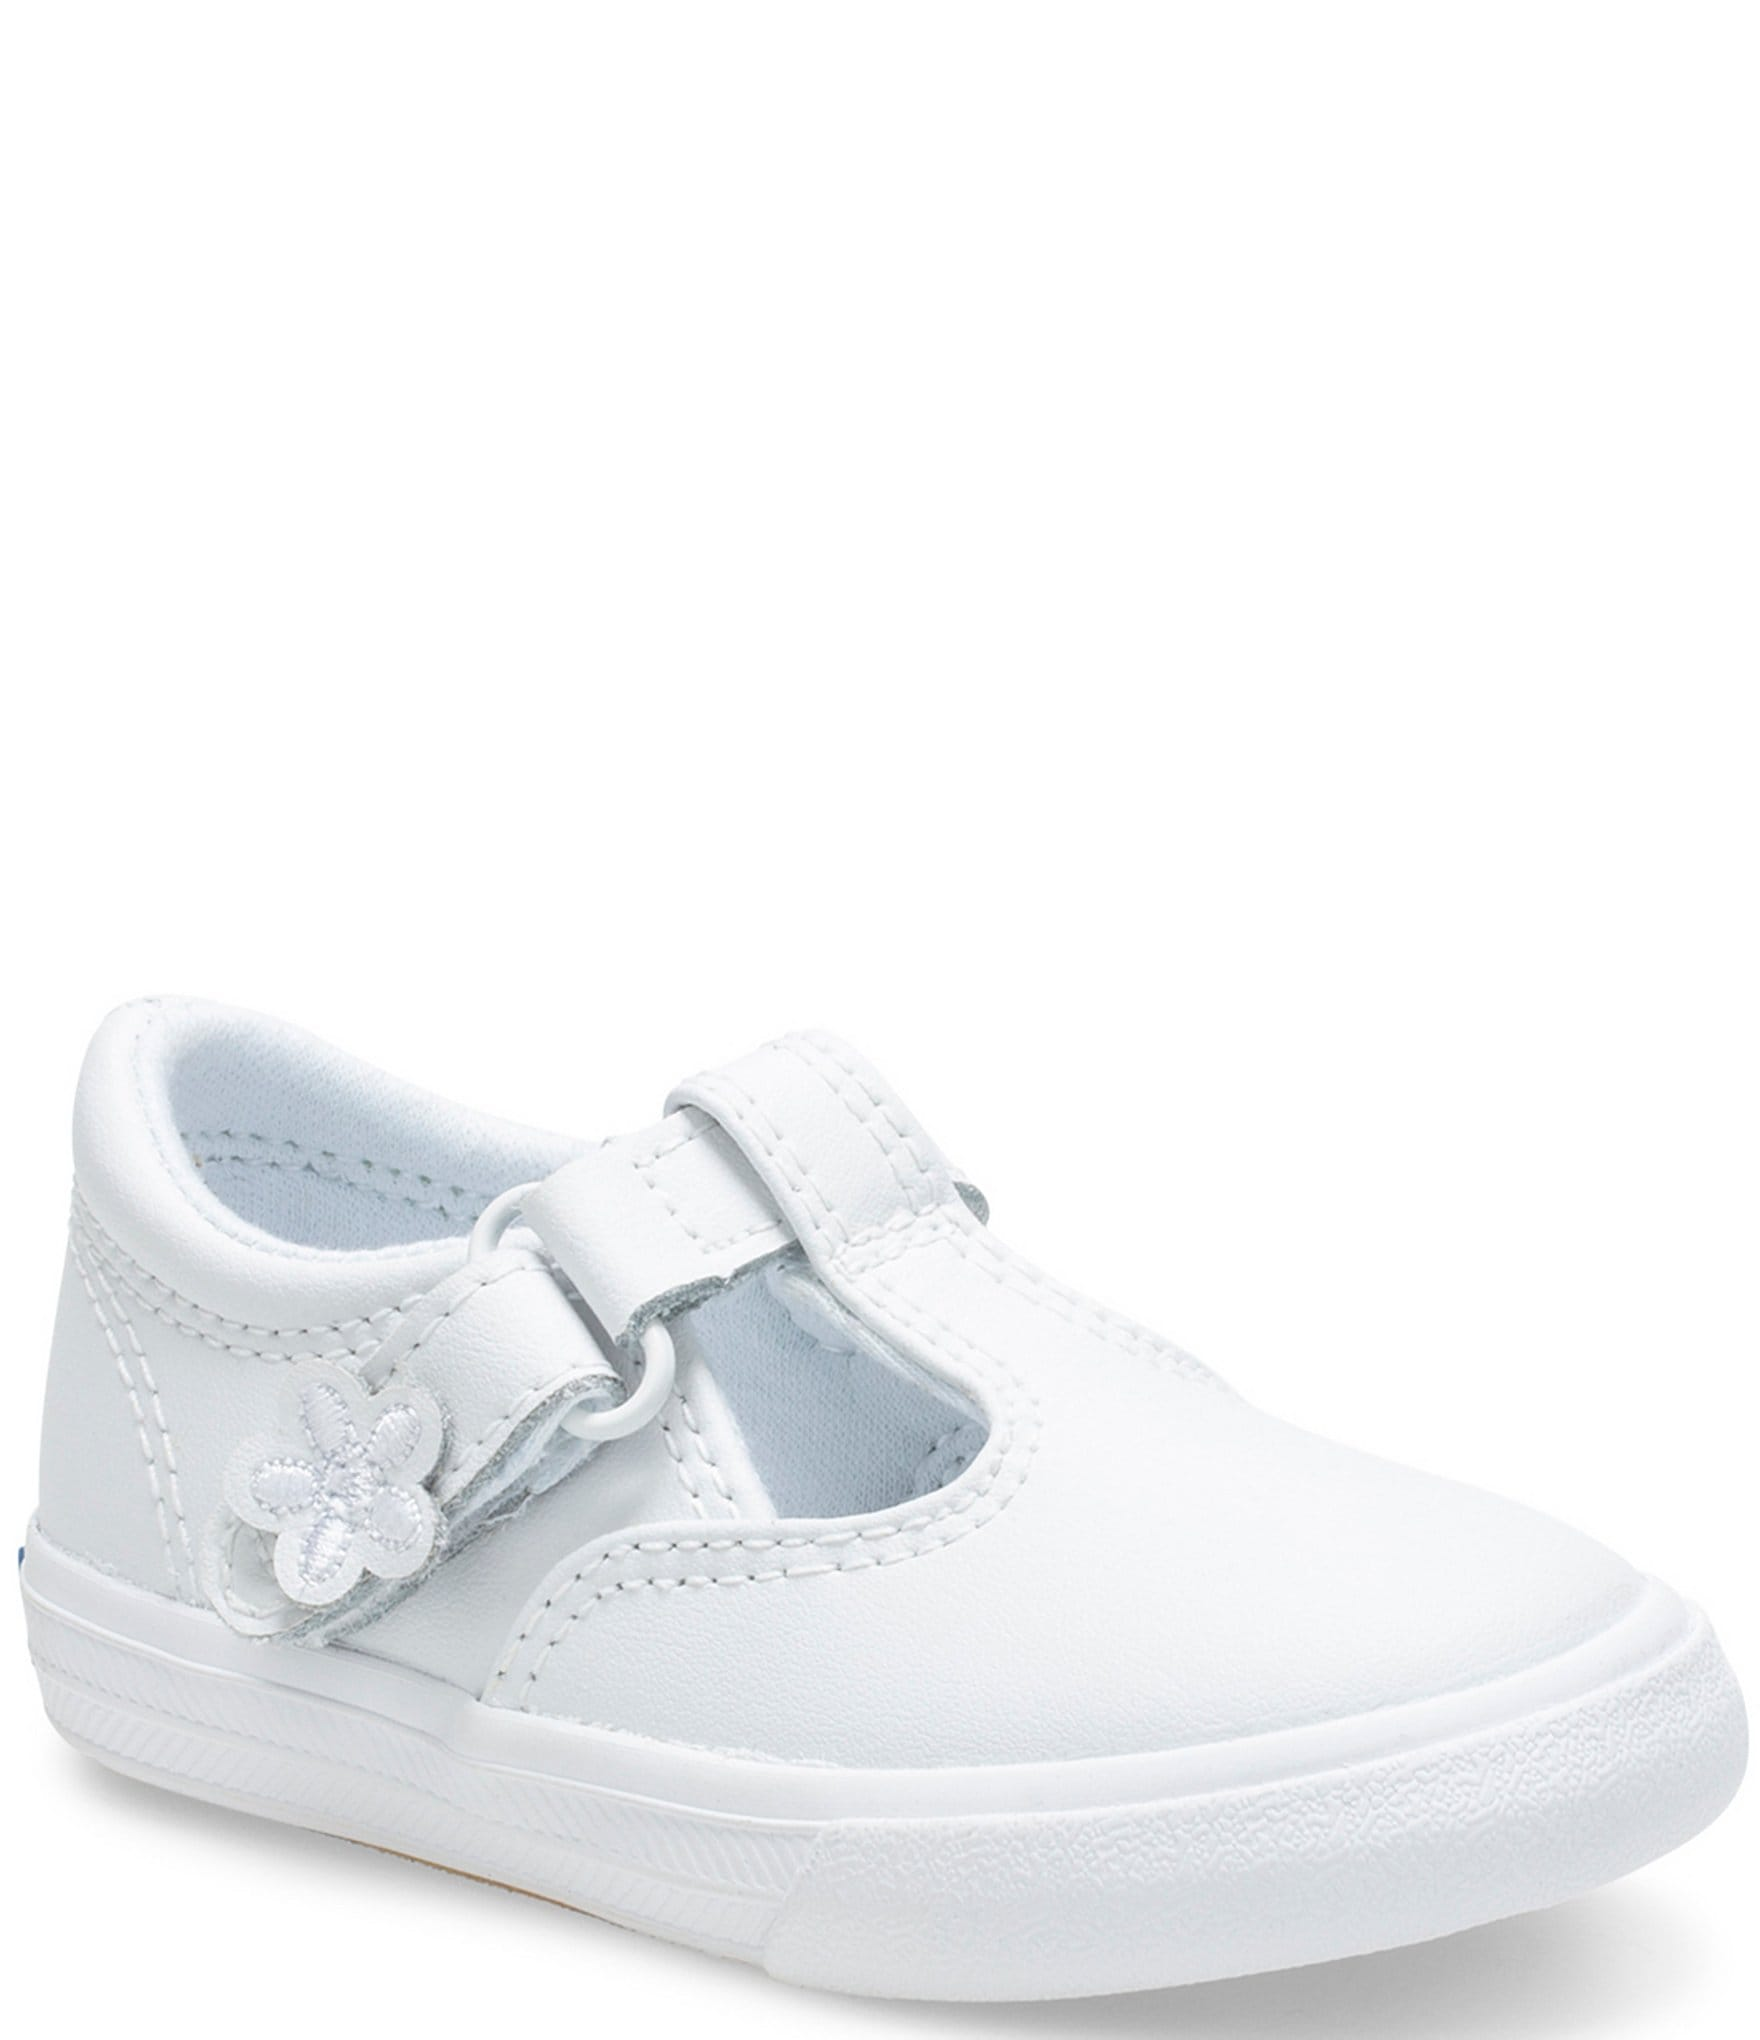 Ivory Infant Girls Shoes